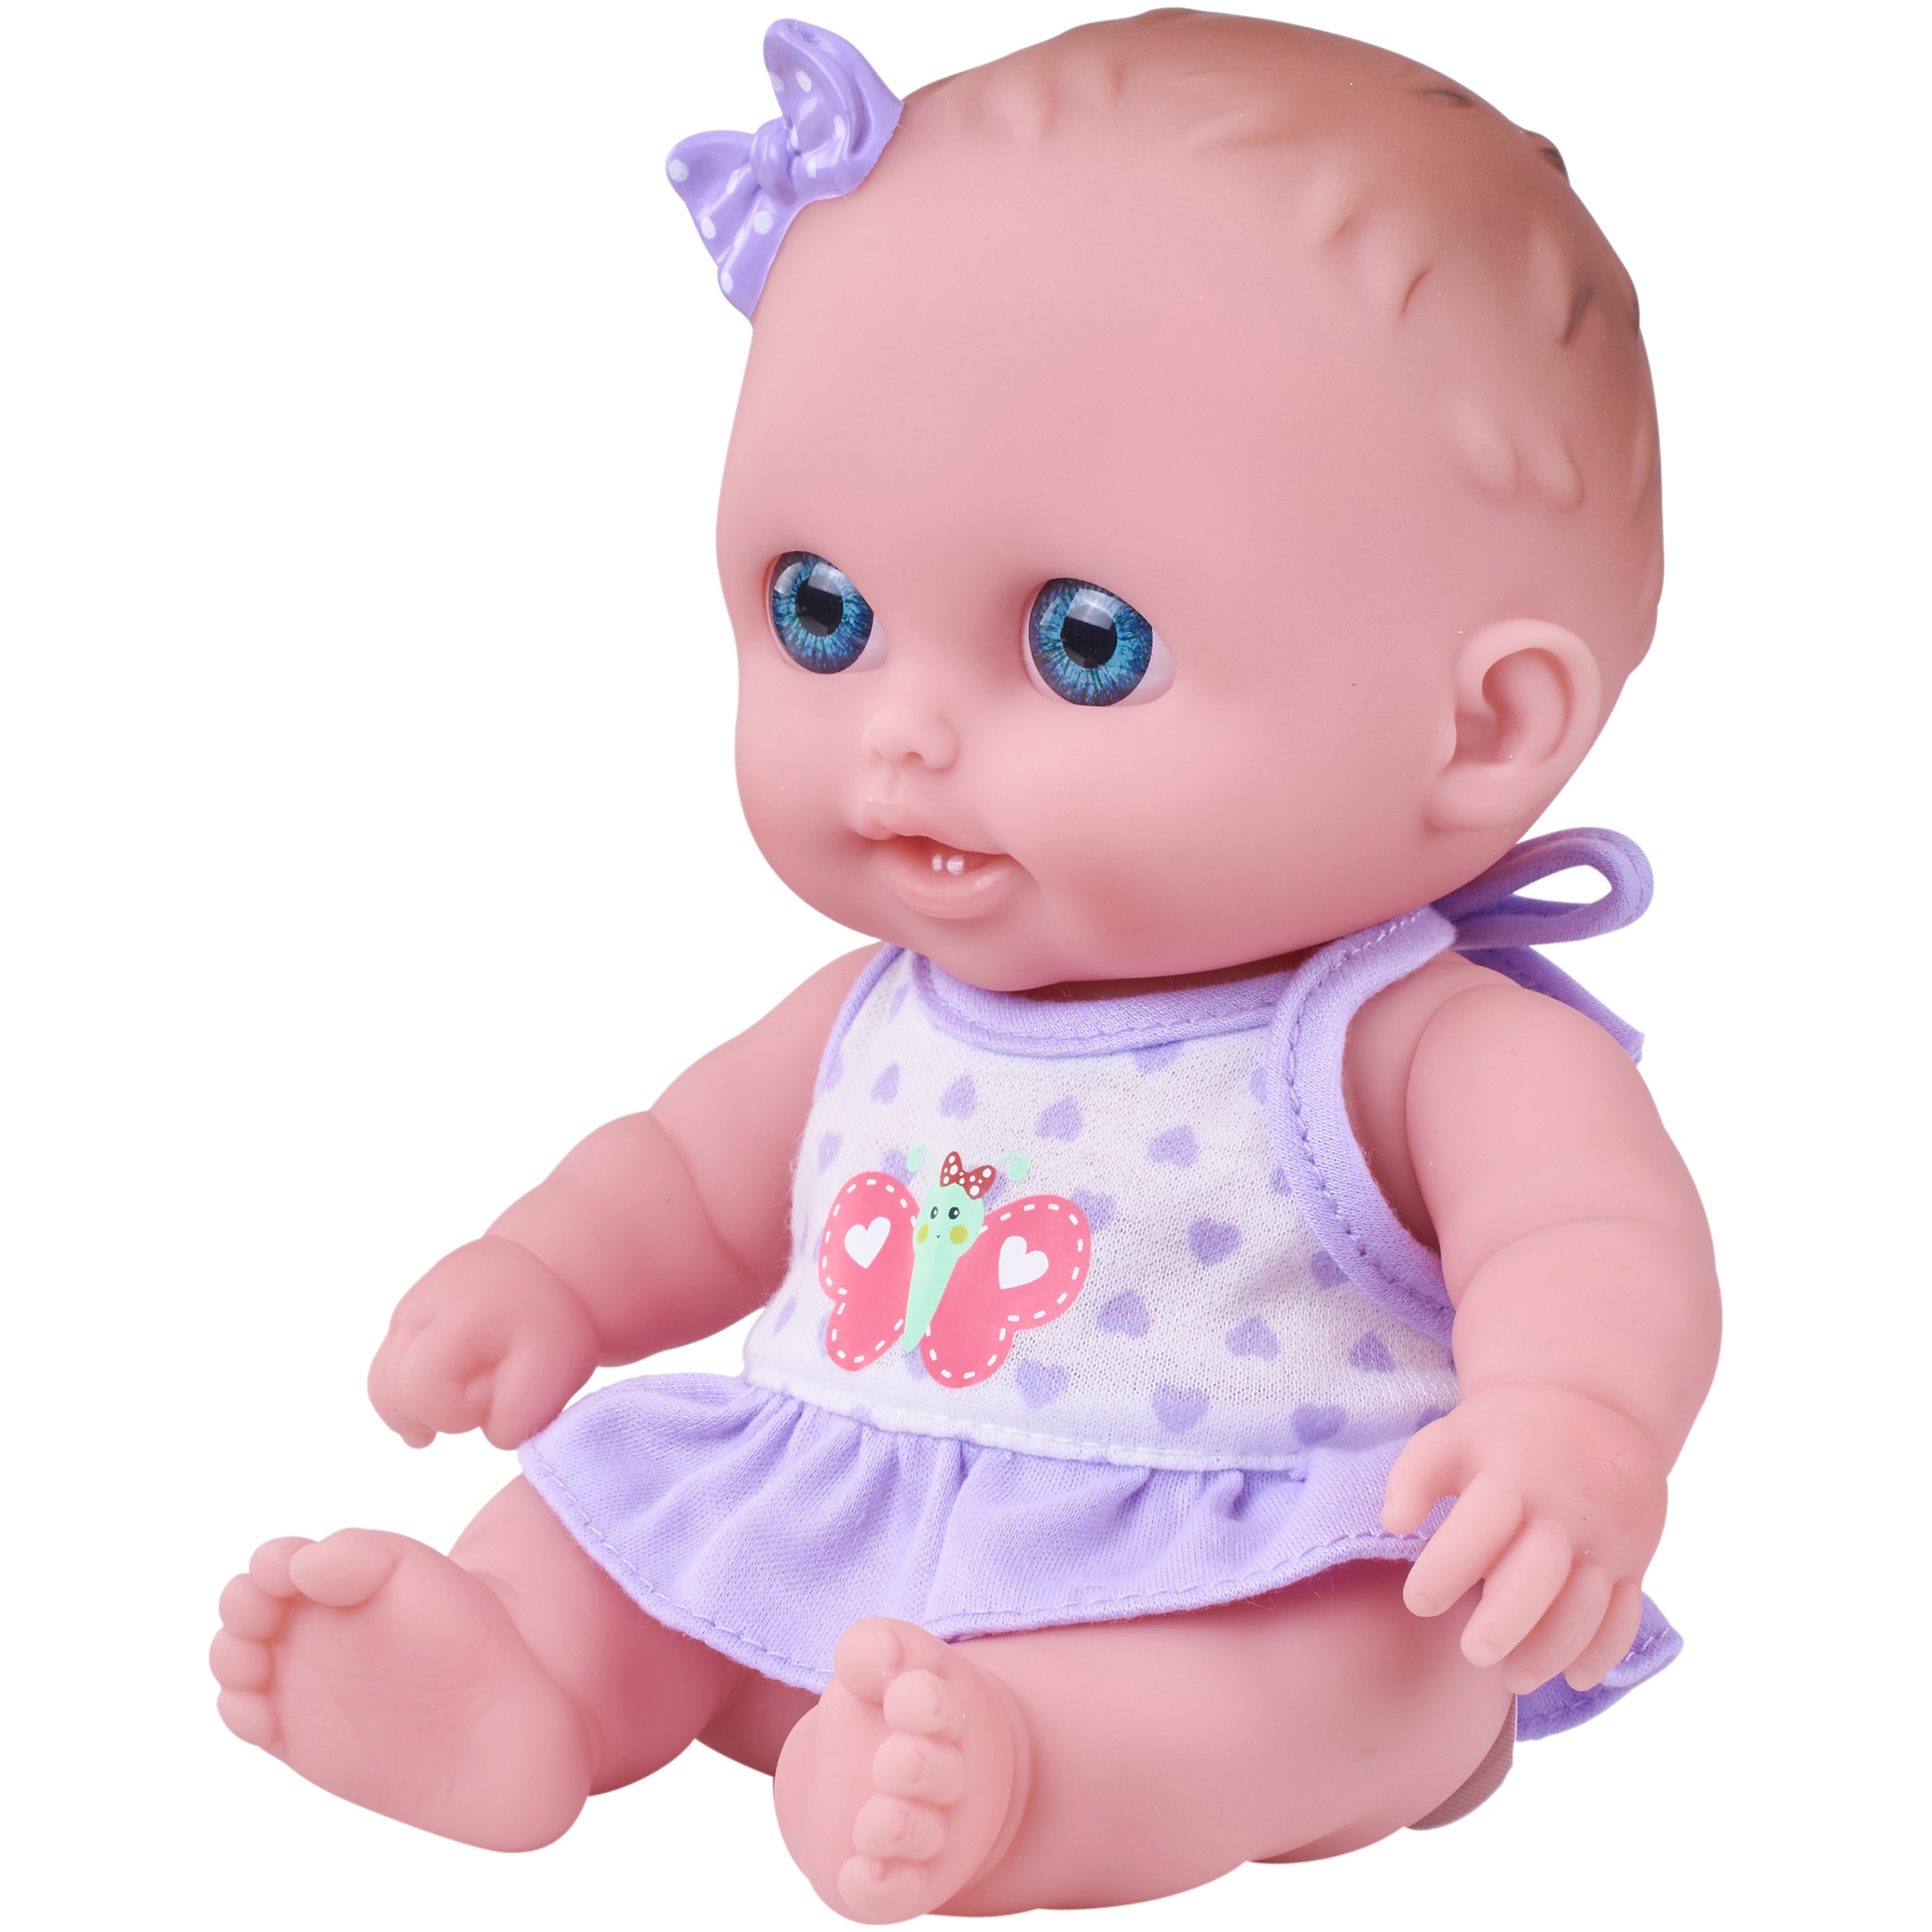 """My Sweet Love Lil Cutsies 8.5"""" Baby Doll with Purple and White Outfit"""